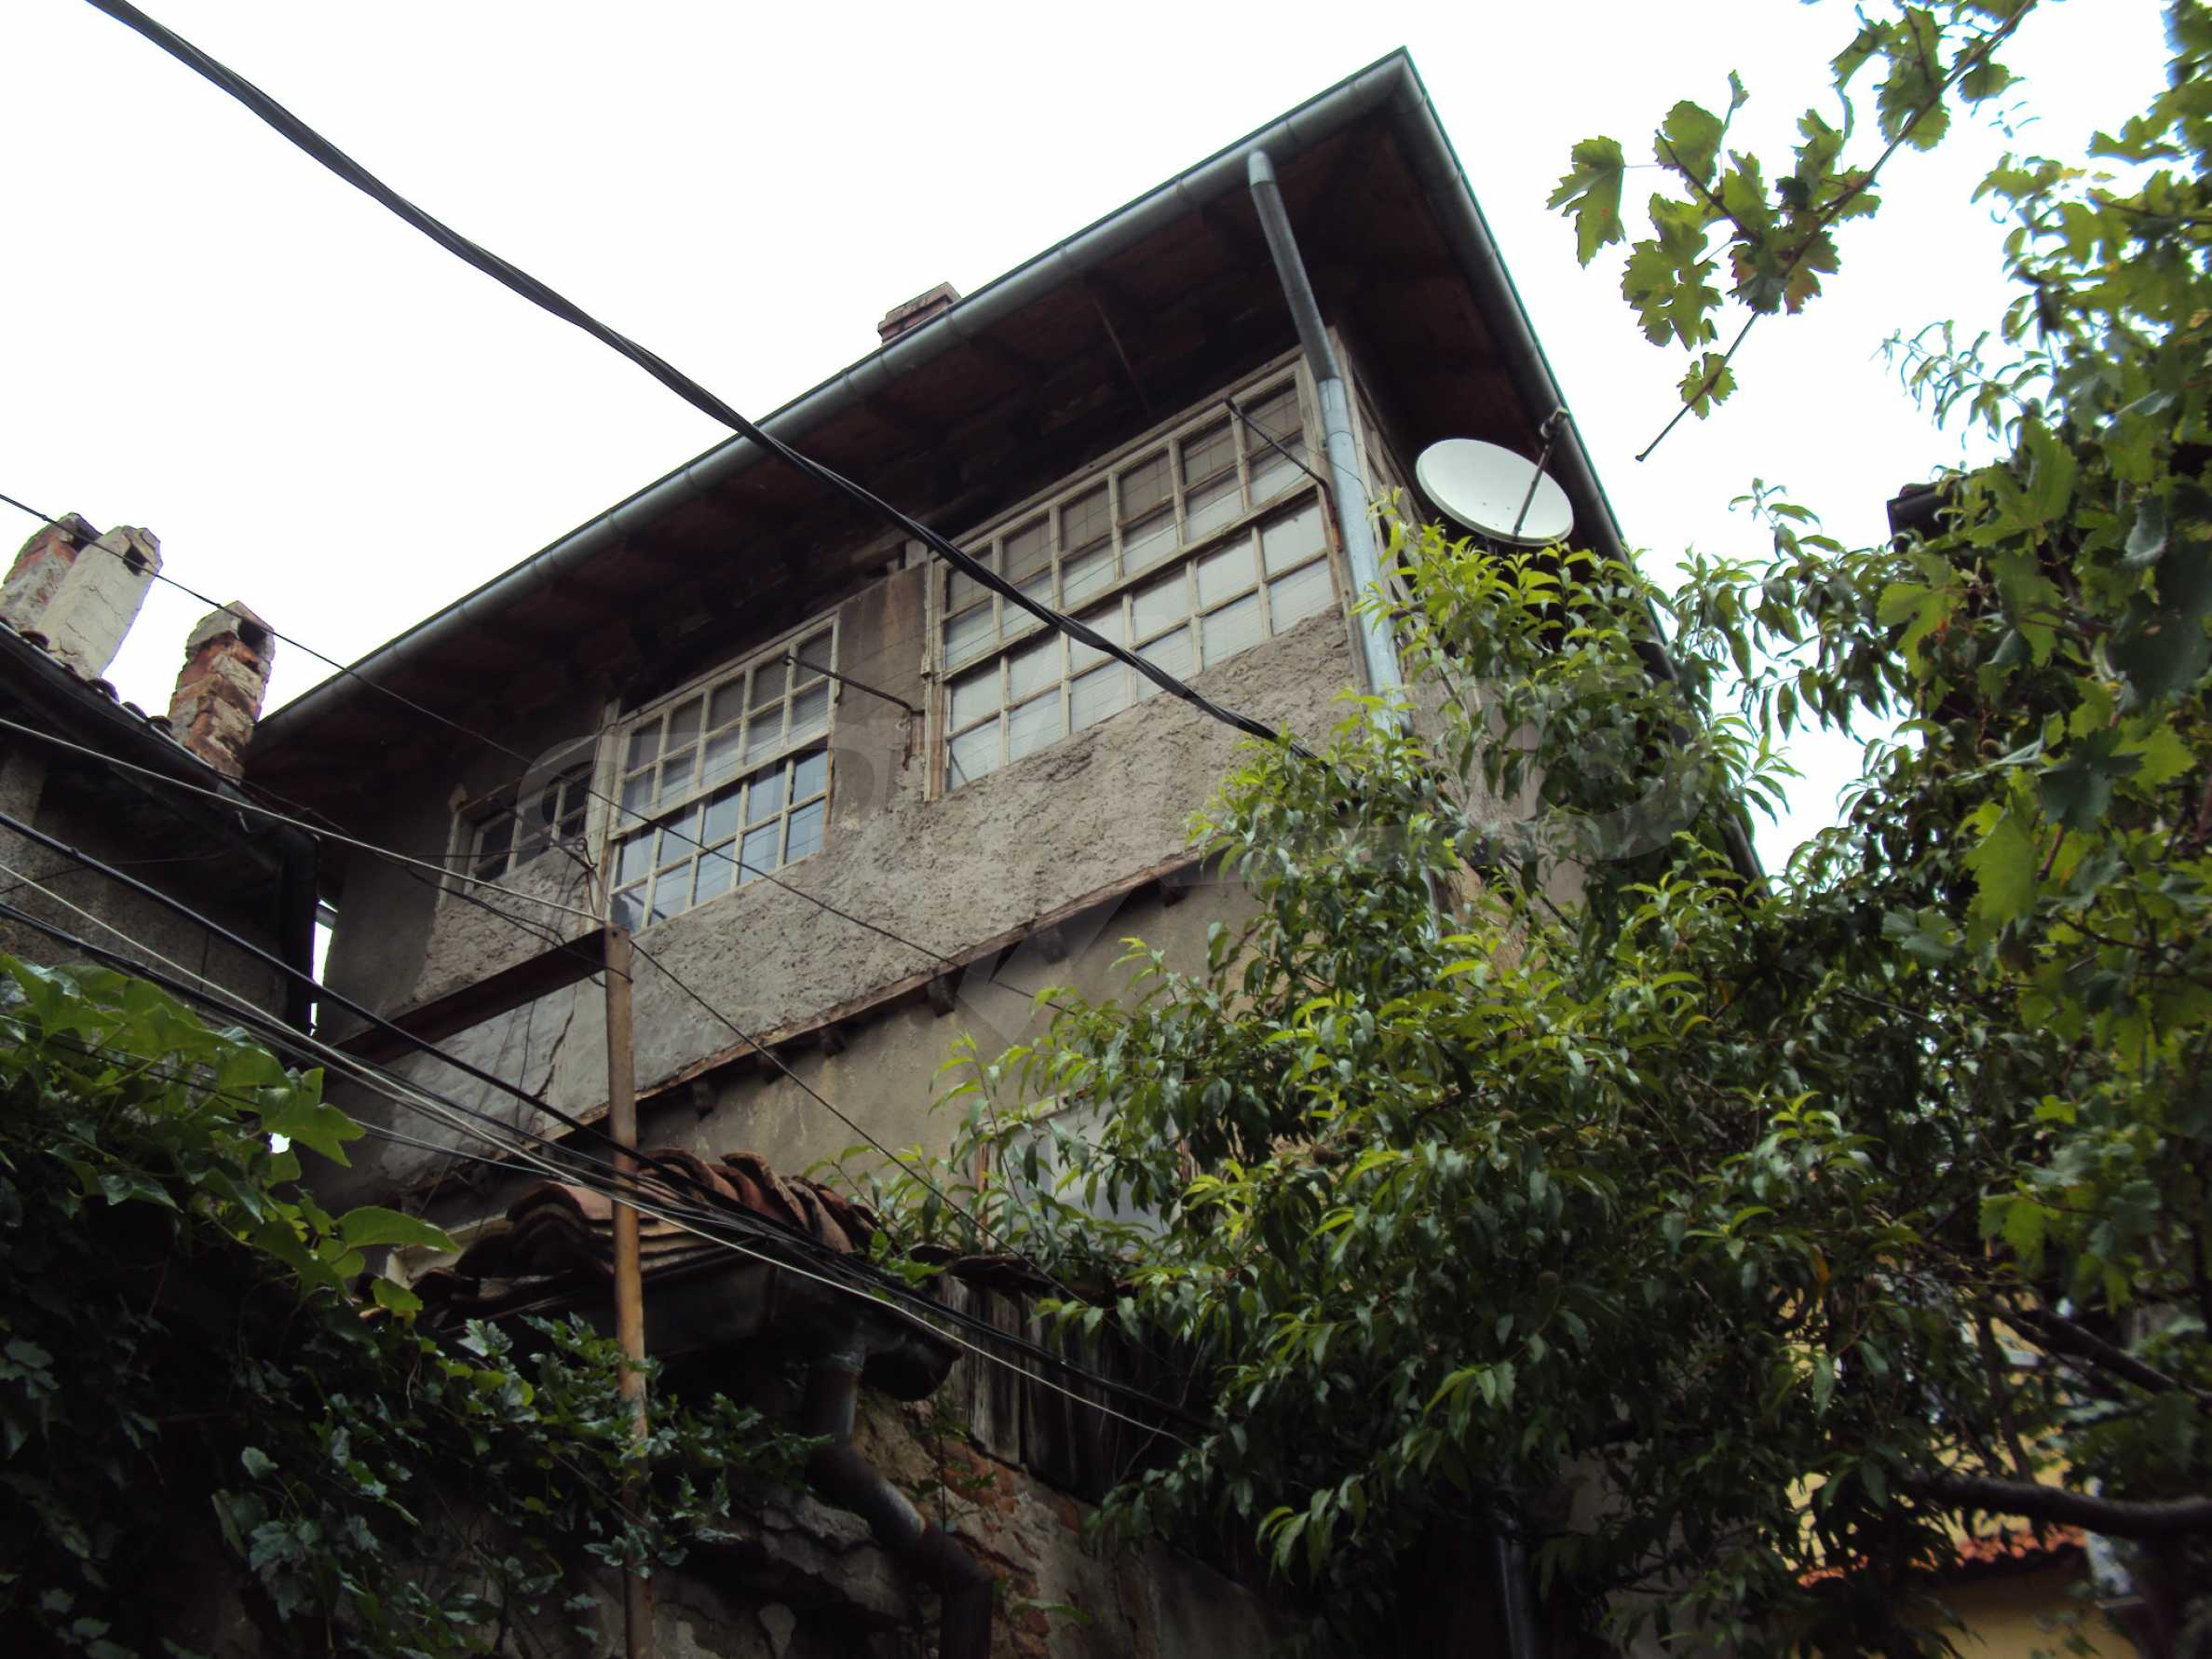 Traditional, spacious house located in the old part of Veliko Tarnovo